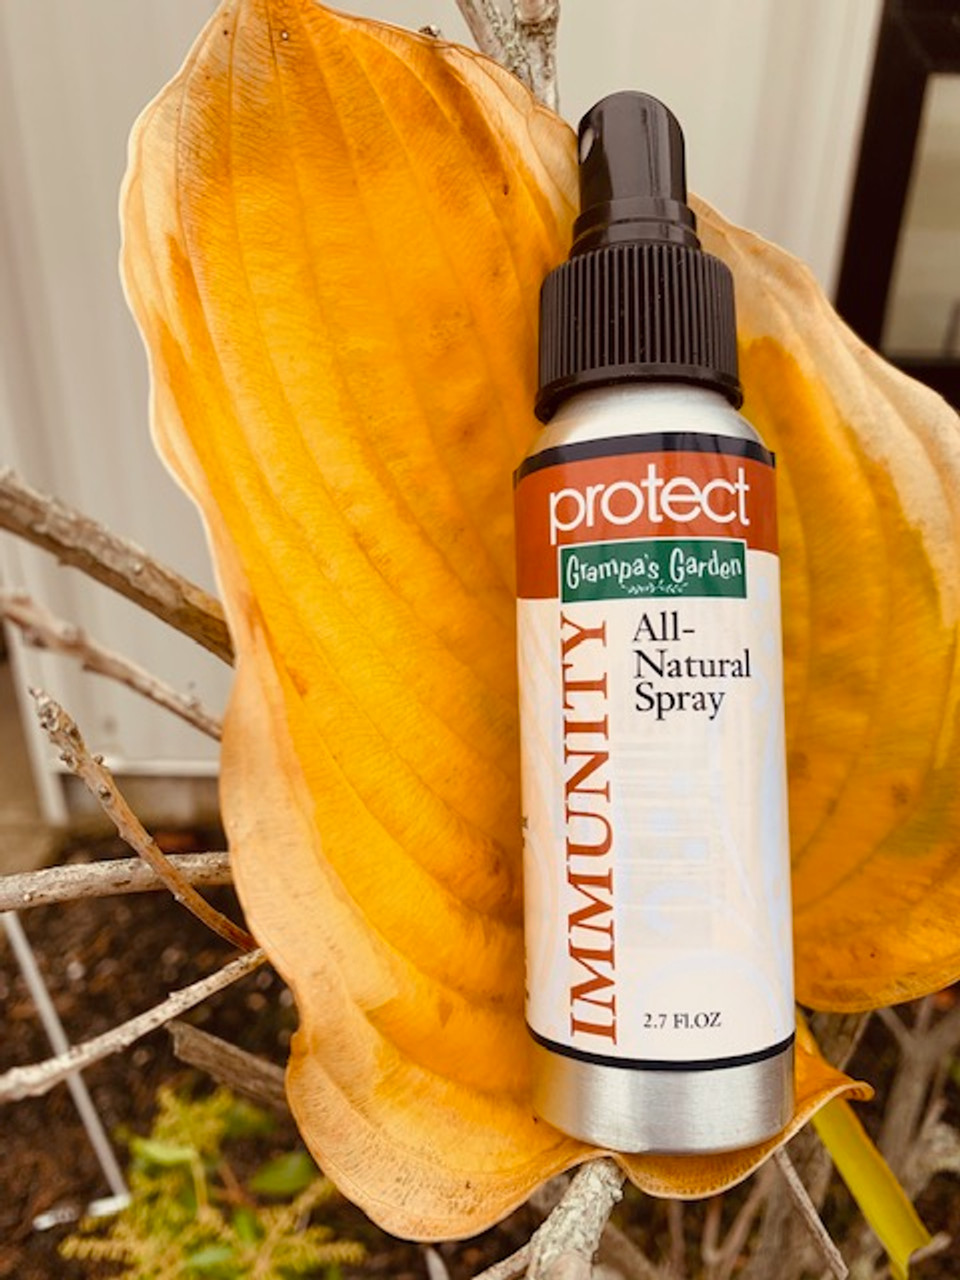 Protect - All Natural Spray